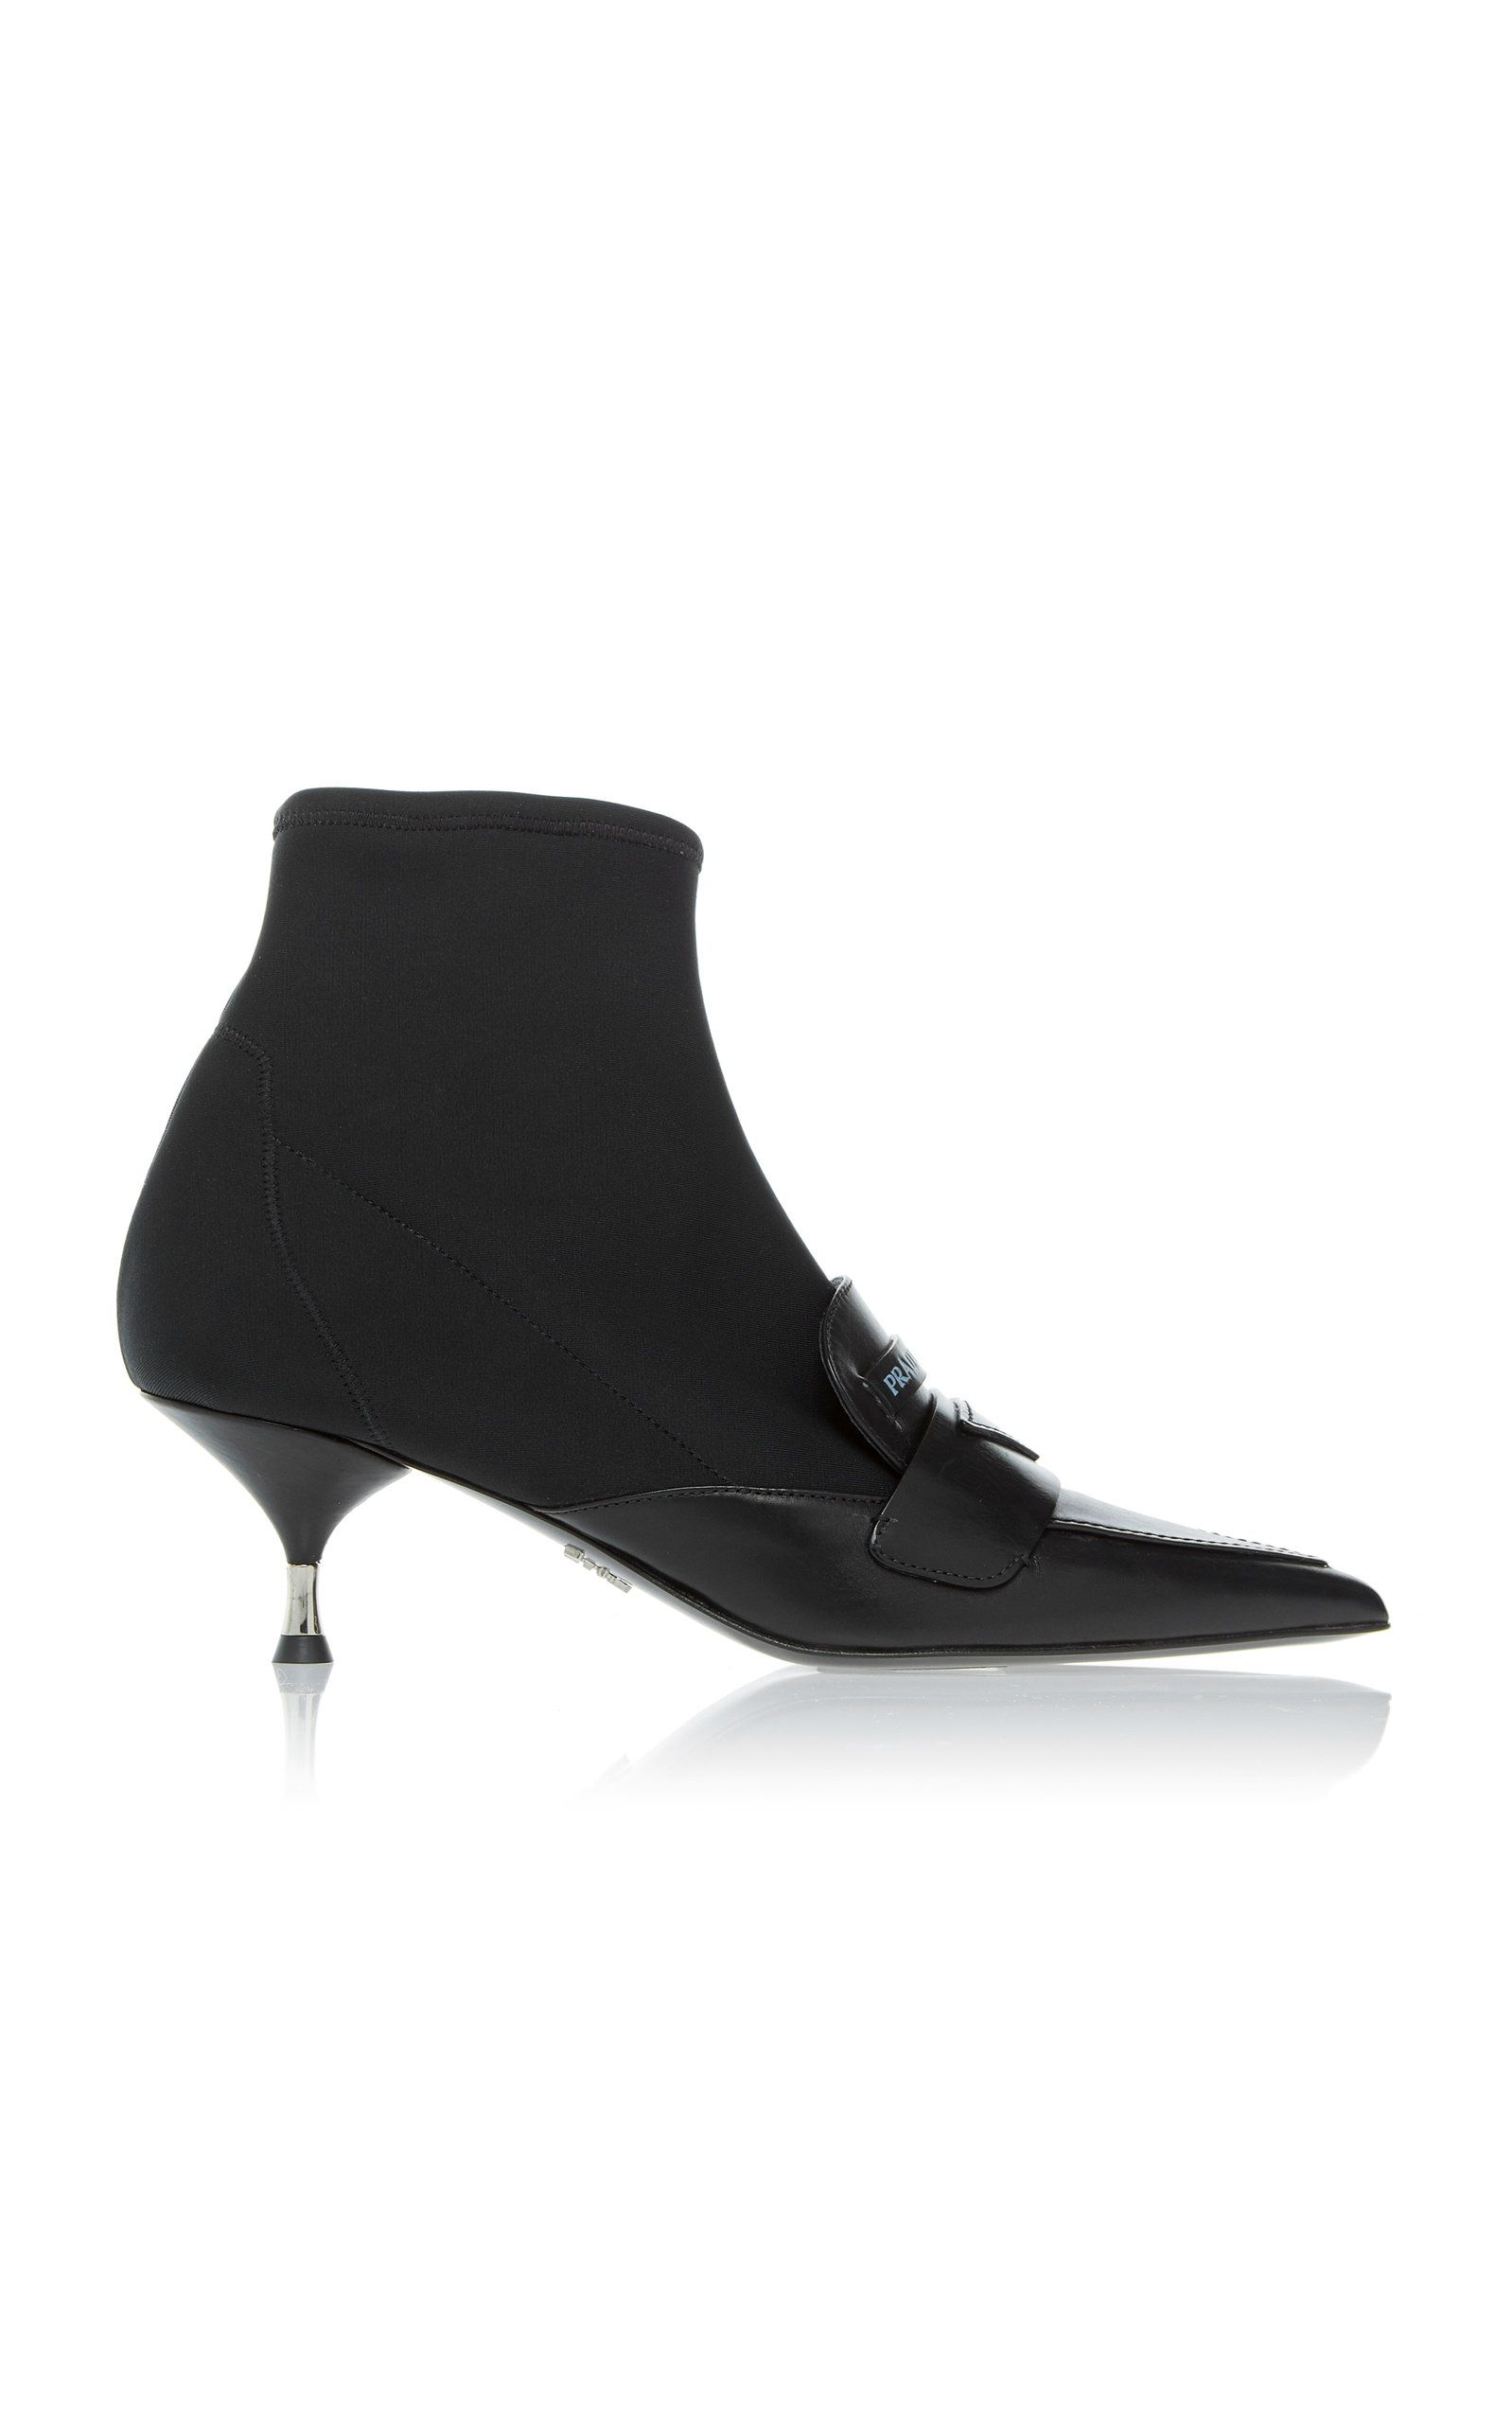 Prediction: This Comfy Boot Trend Is About to Be Very Major - kitten heel boots 295021 1630281634661